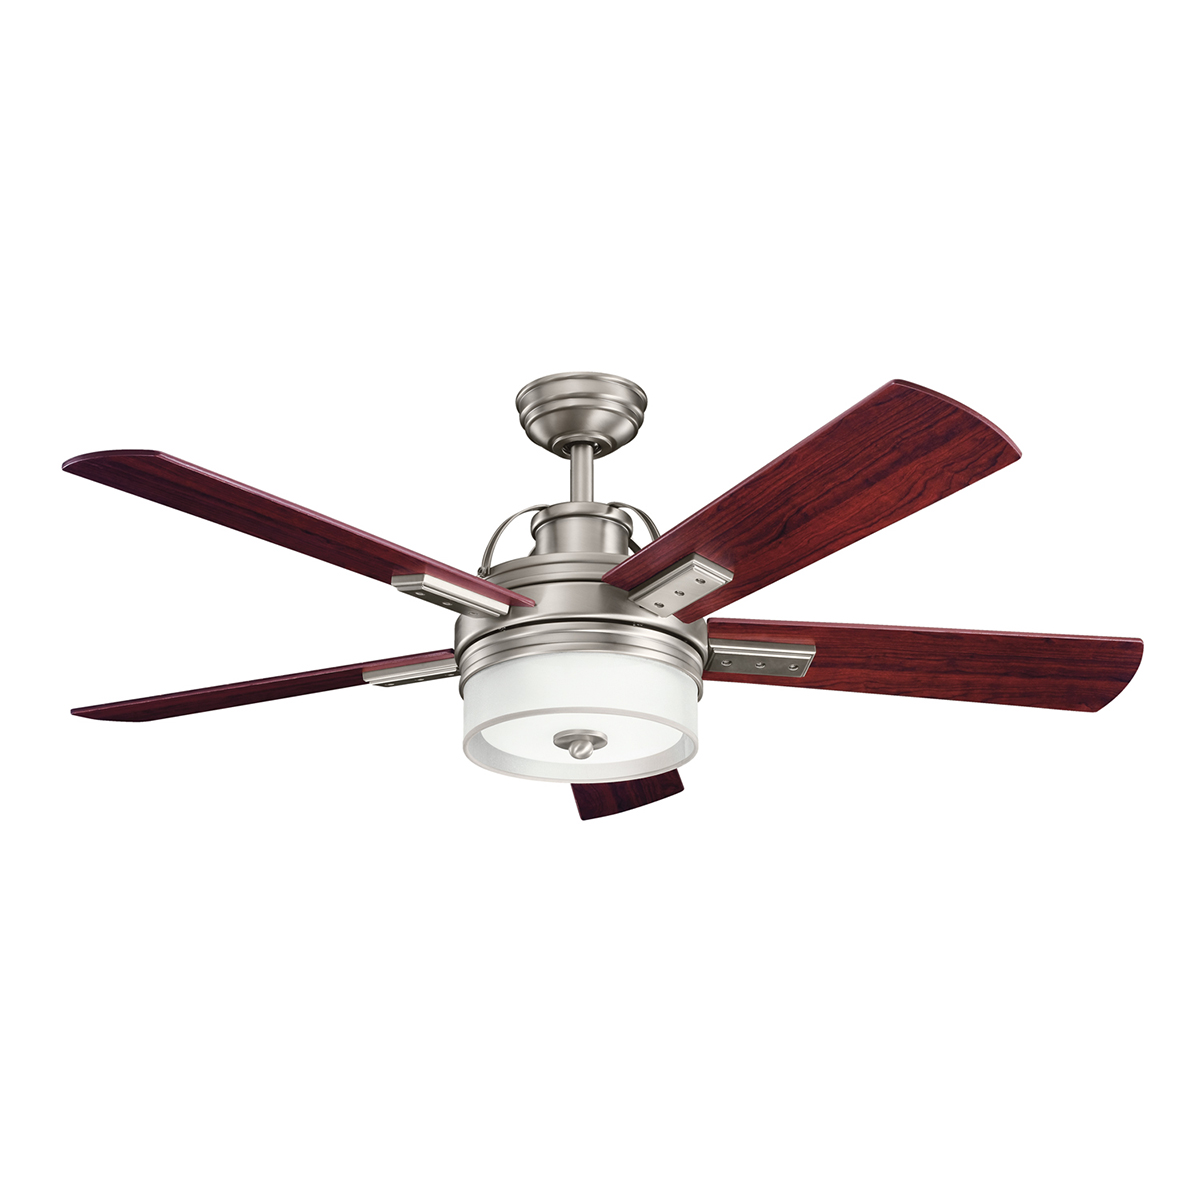 hight resolution of lacey ii ceiling fan with light by kichler